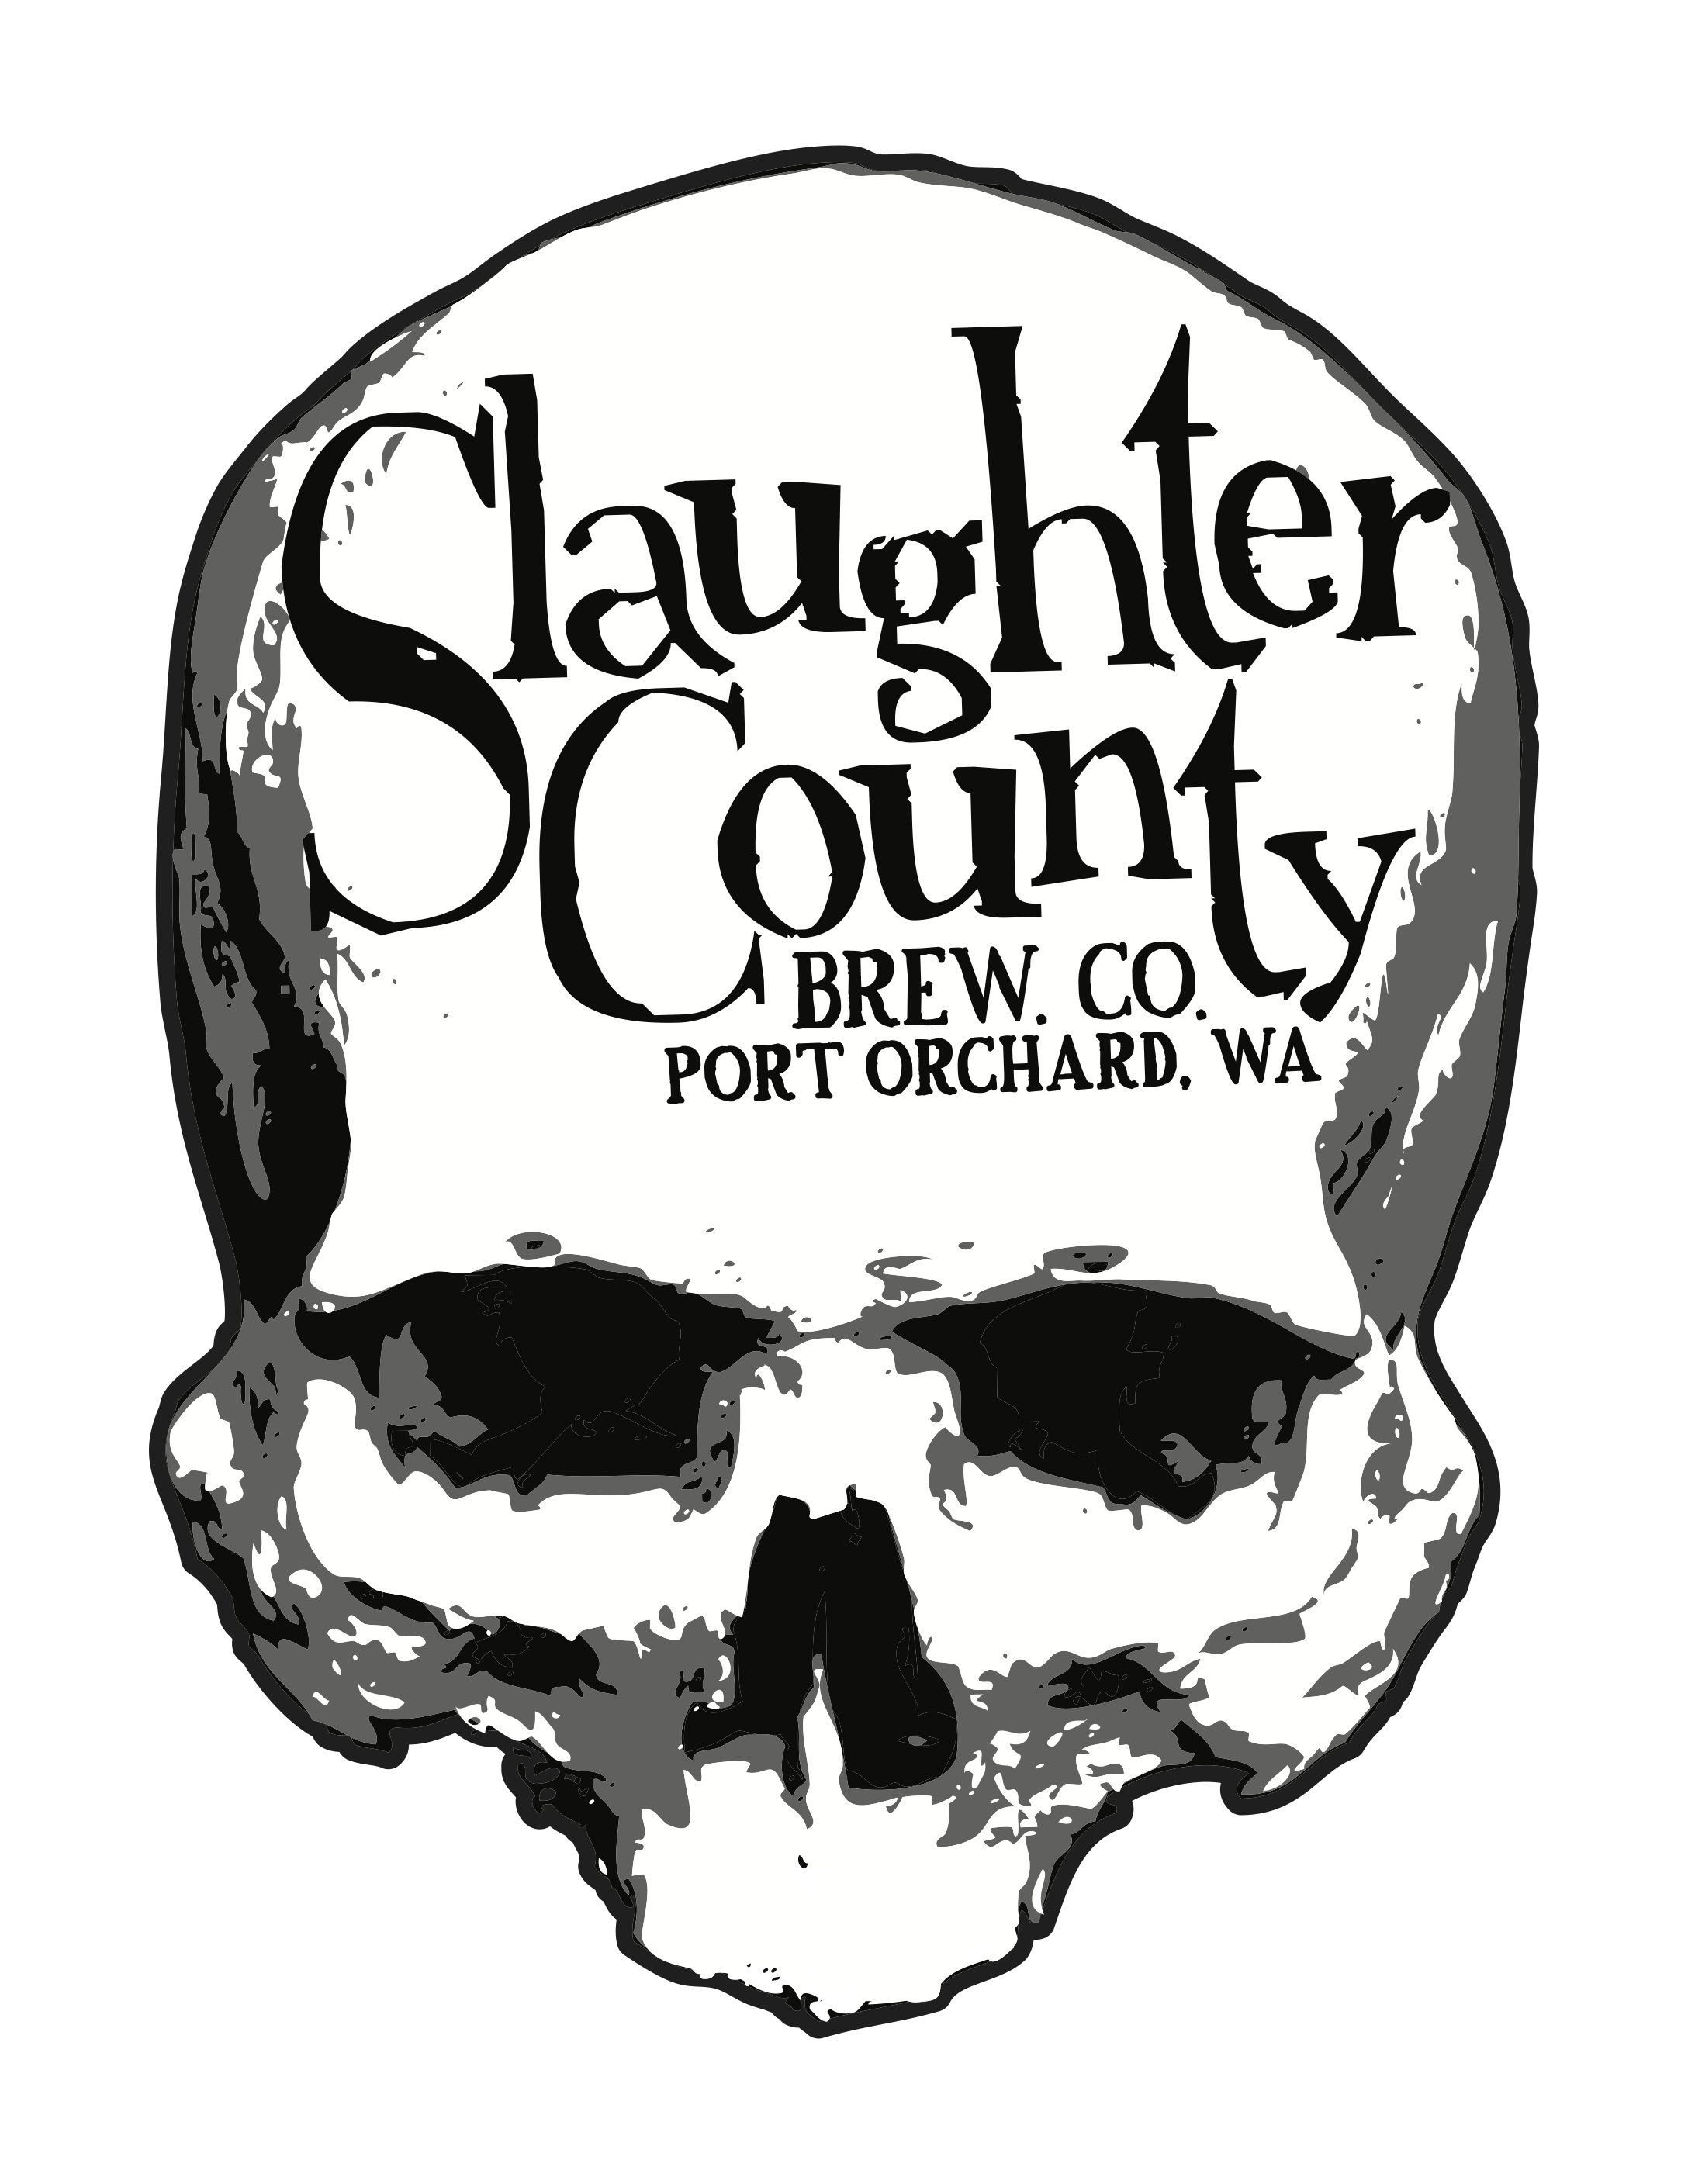 Slaughter County Brewery